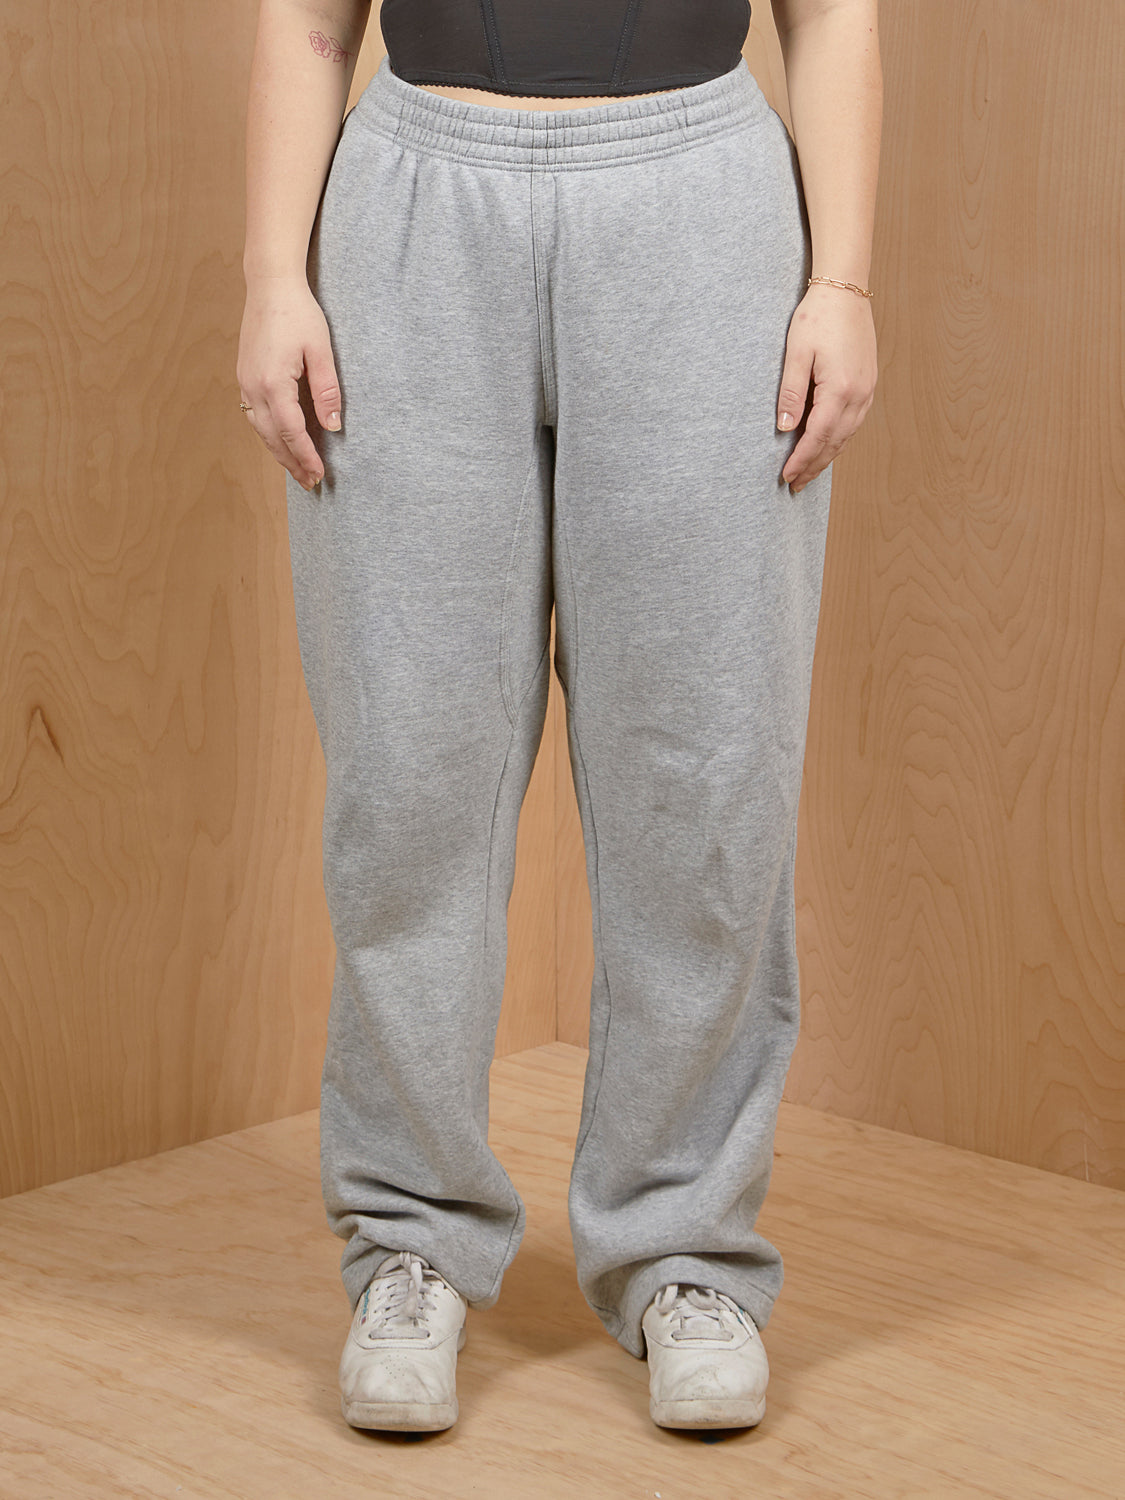 Nike Grey Sweatpants